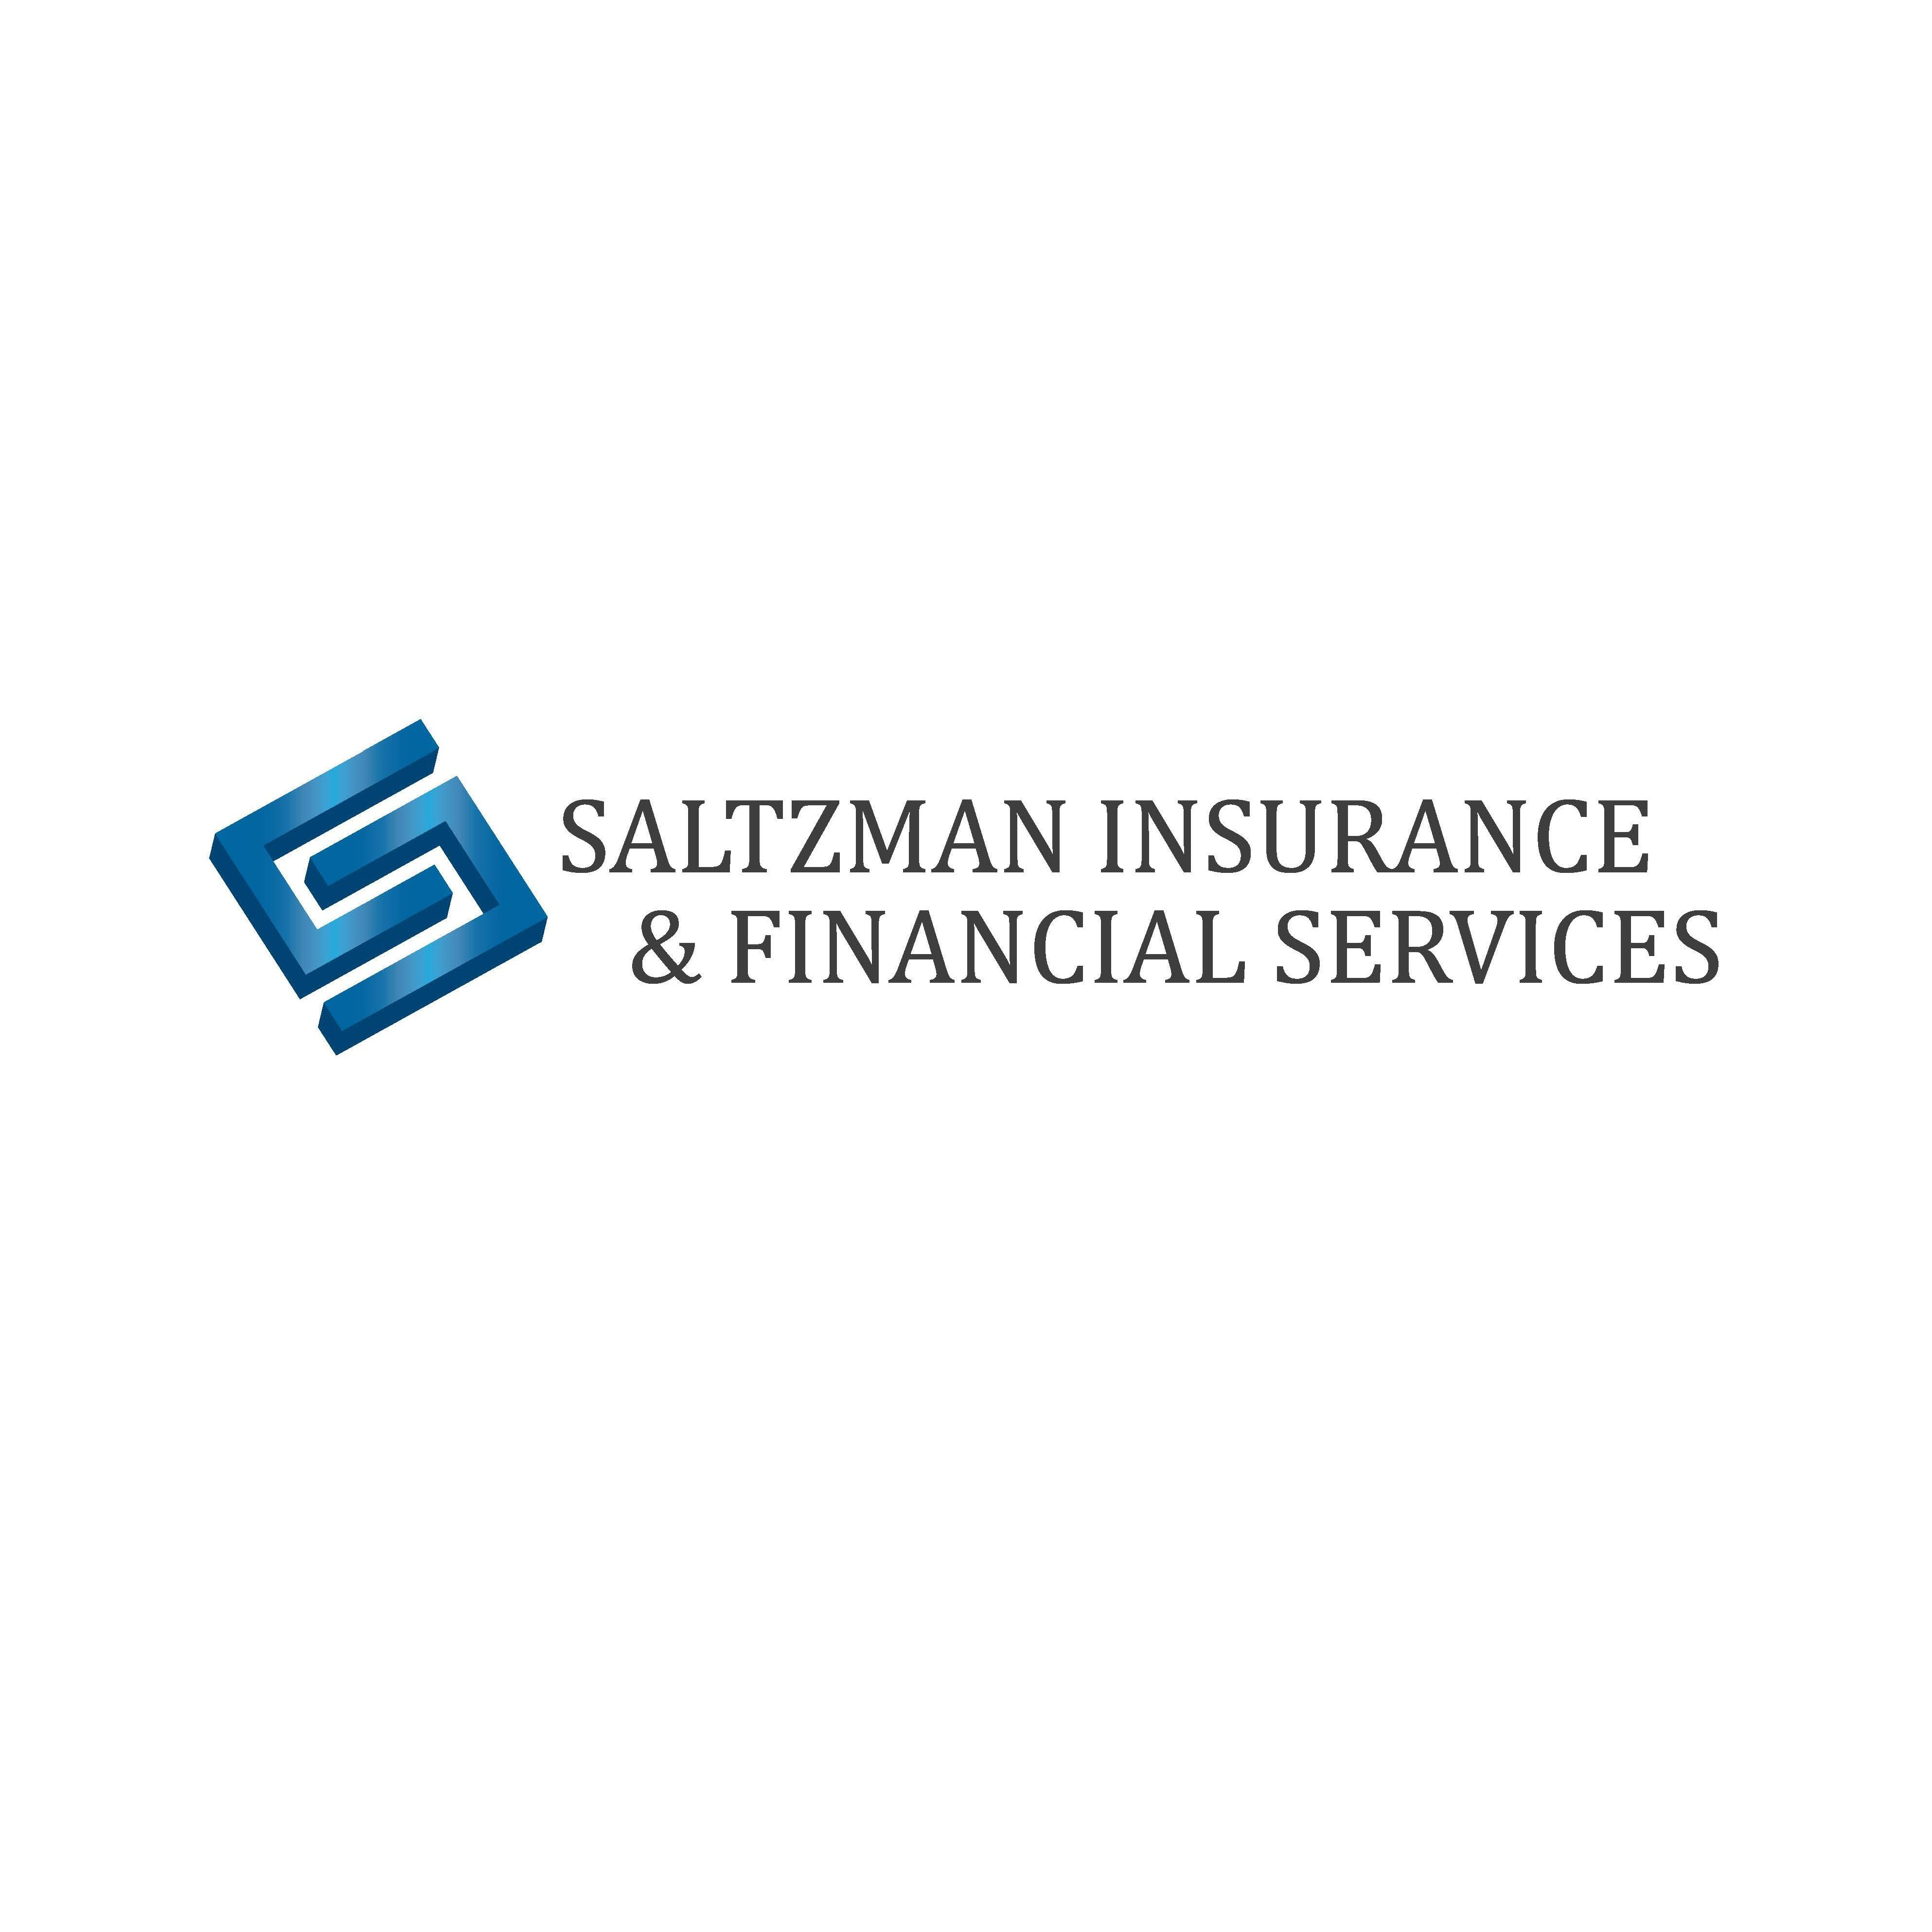 Saltzman Insurance & Financial Services